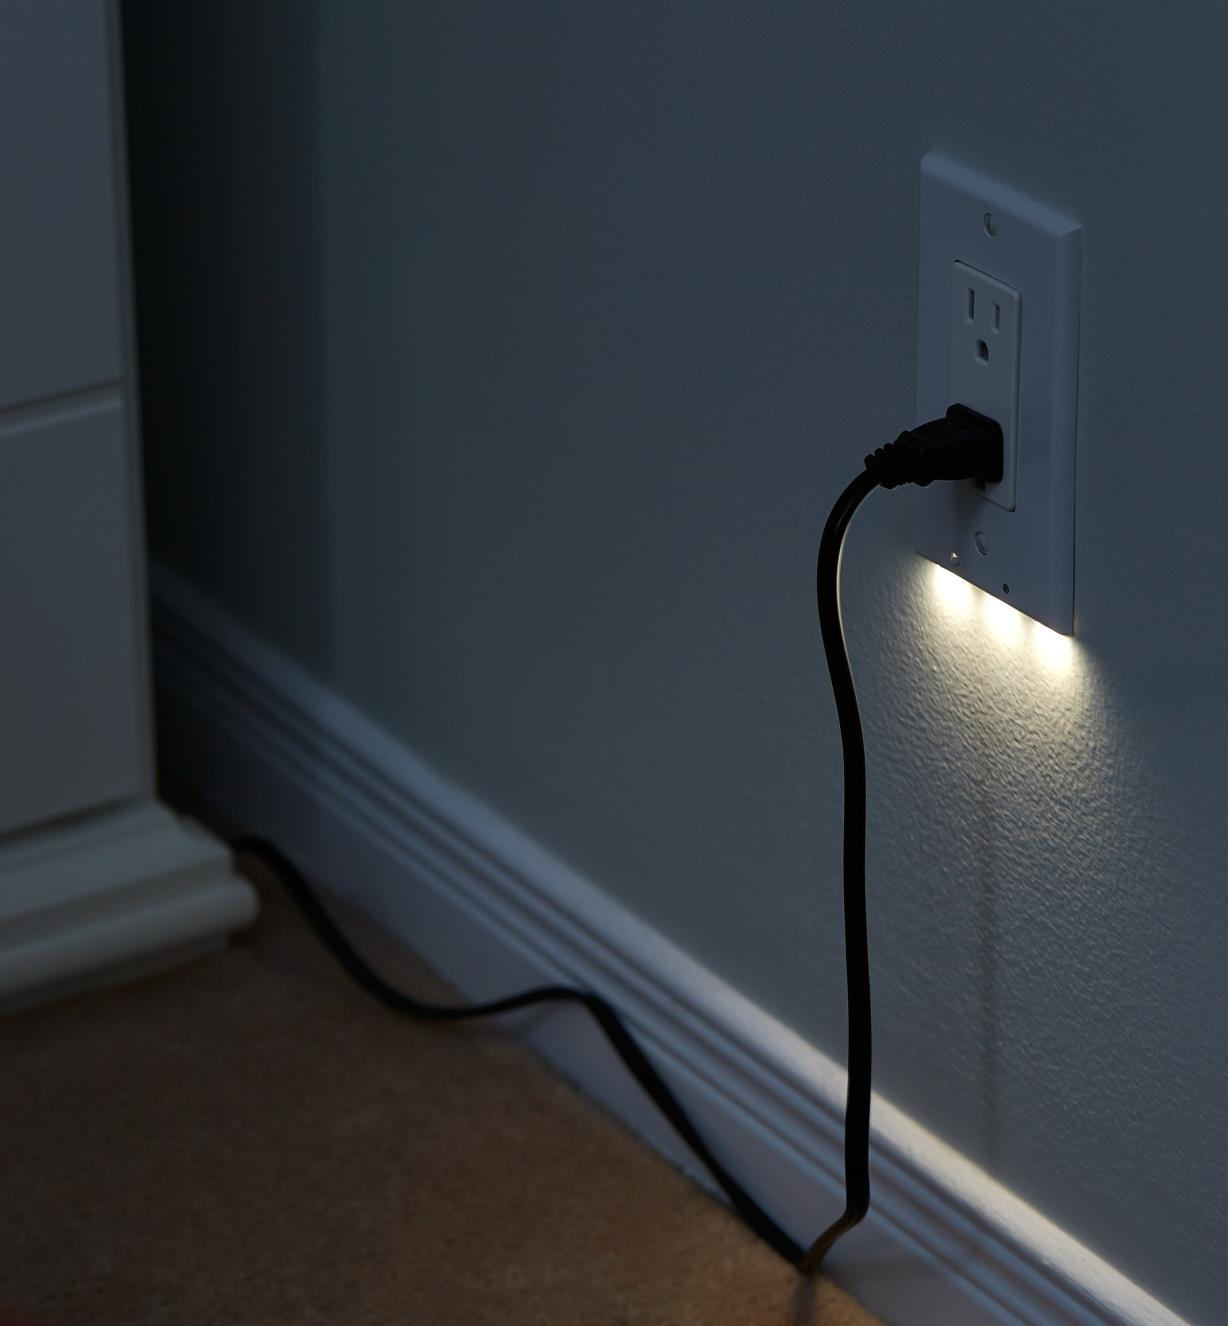 A Decora-style LED outlet cover plate mounted on a wall, giving gentle, diffused lighting at night.